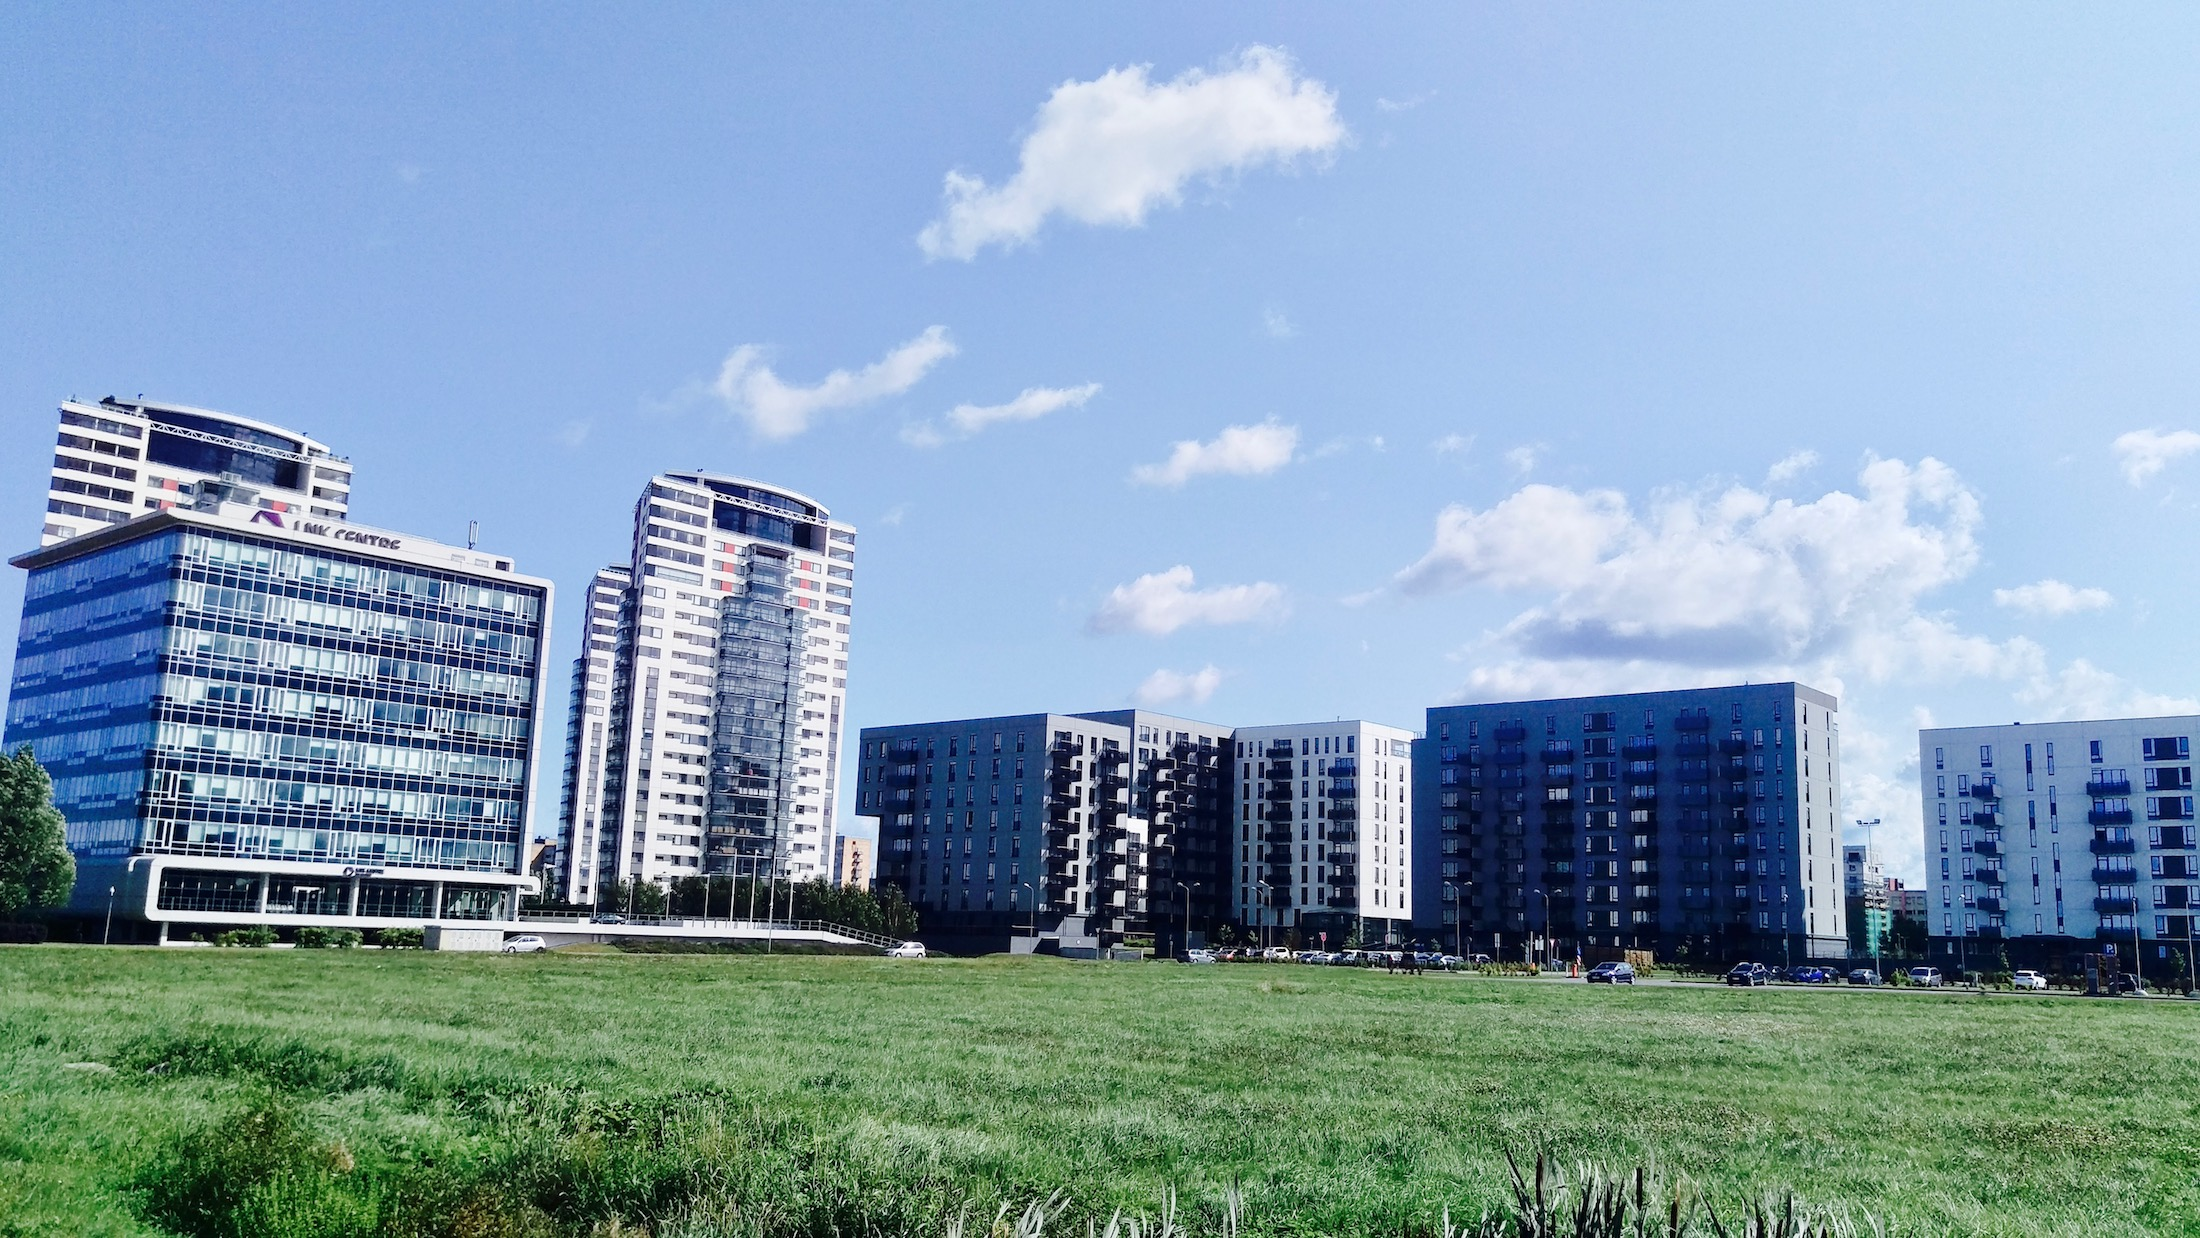 Office and Residential buildings in Skanste neighborhood